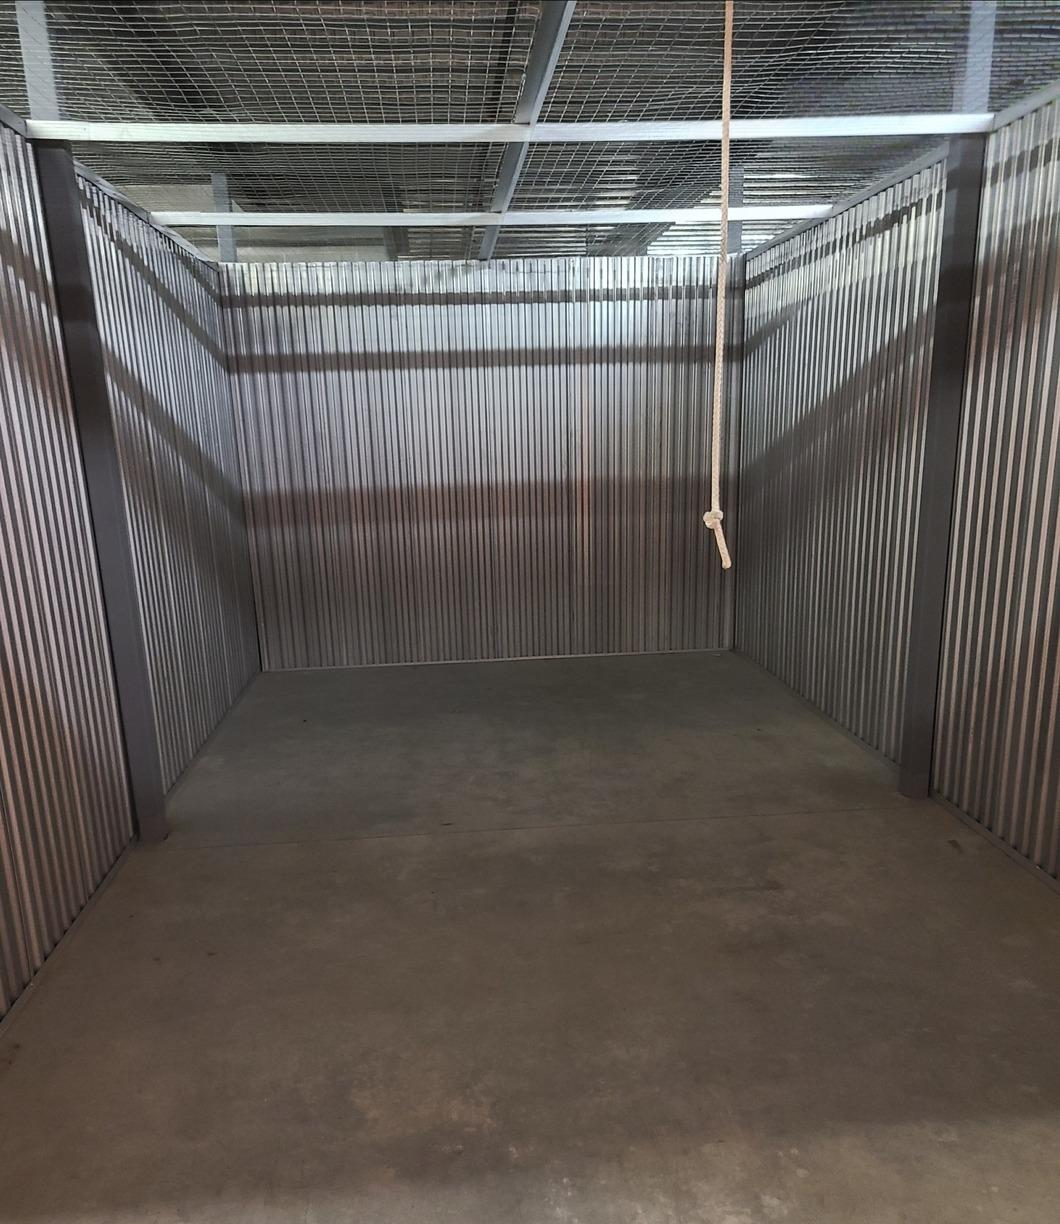 Storage Unit Cleanout in Waukegan, IL - After Photo